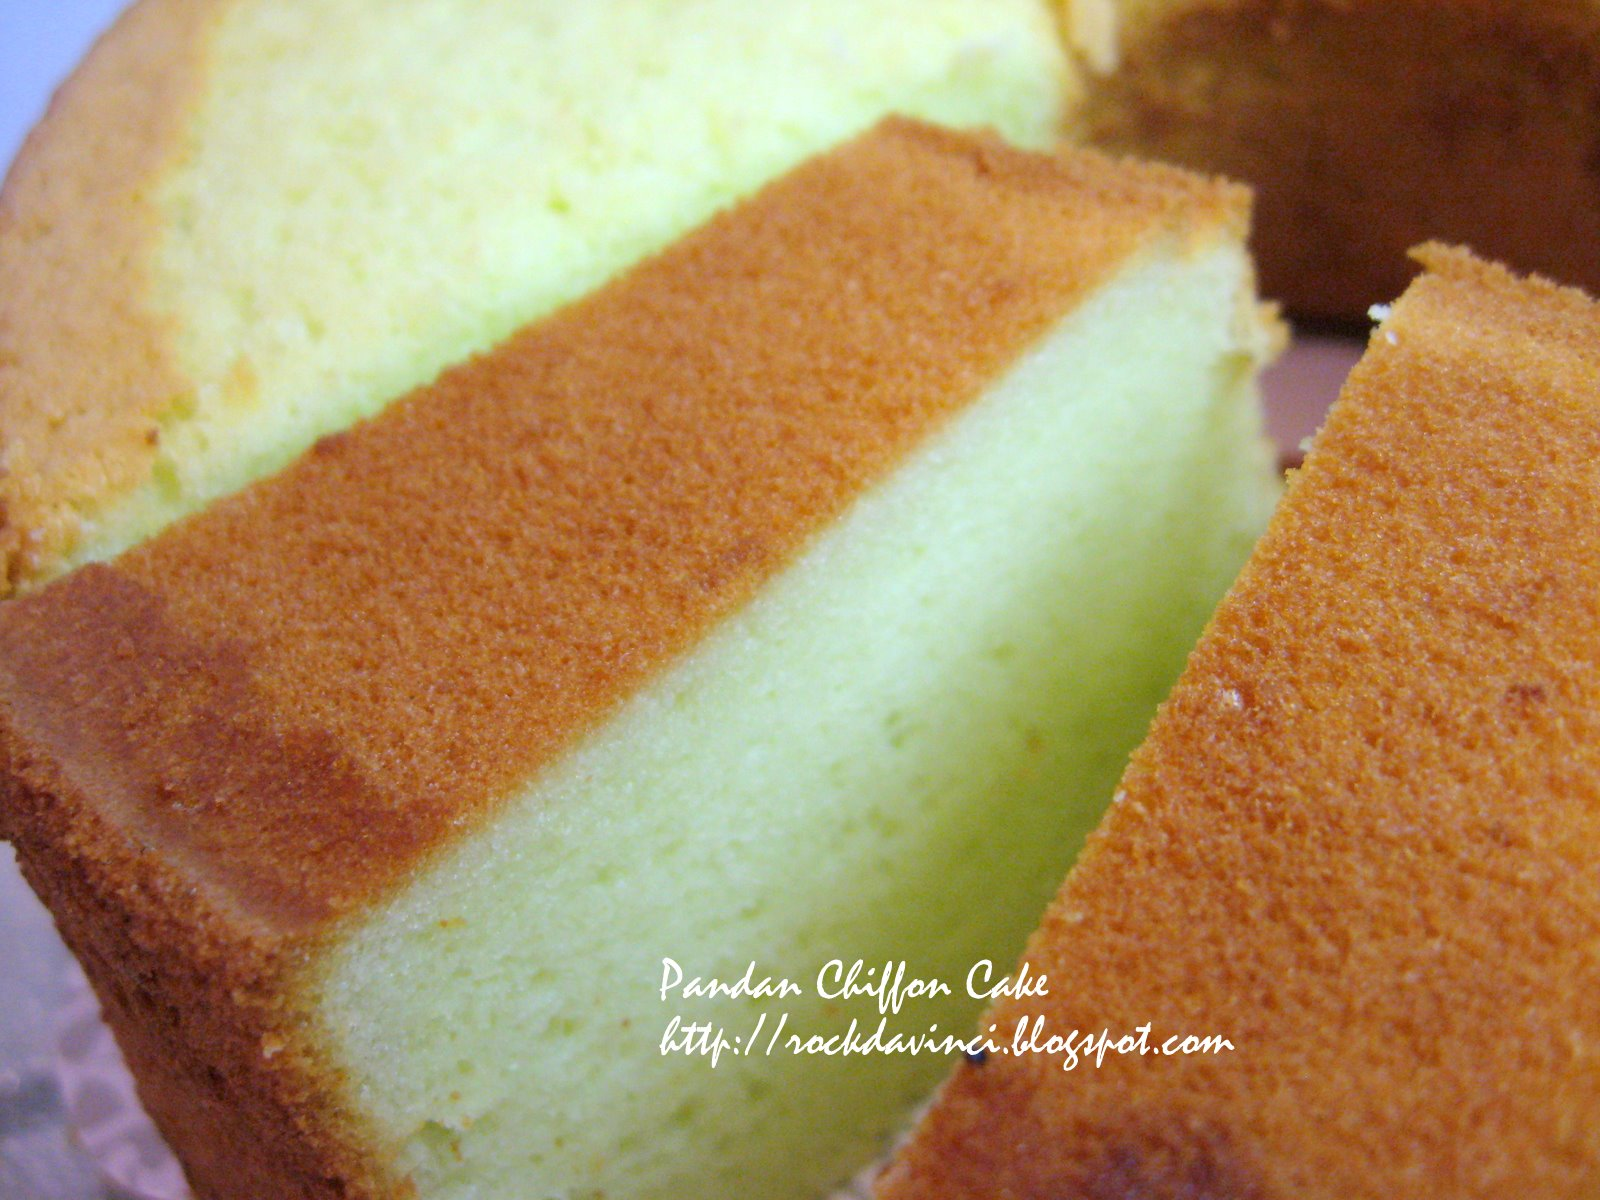 Let's Rock Like da Vinci - Cook Away!: Pandan Chiffon Cake Adventure